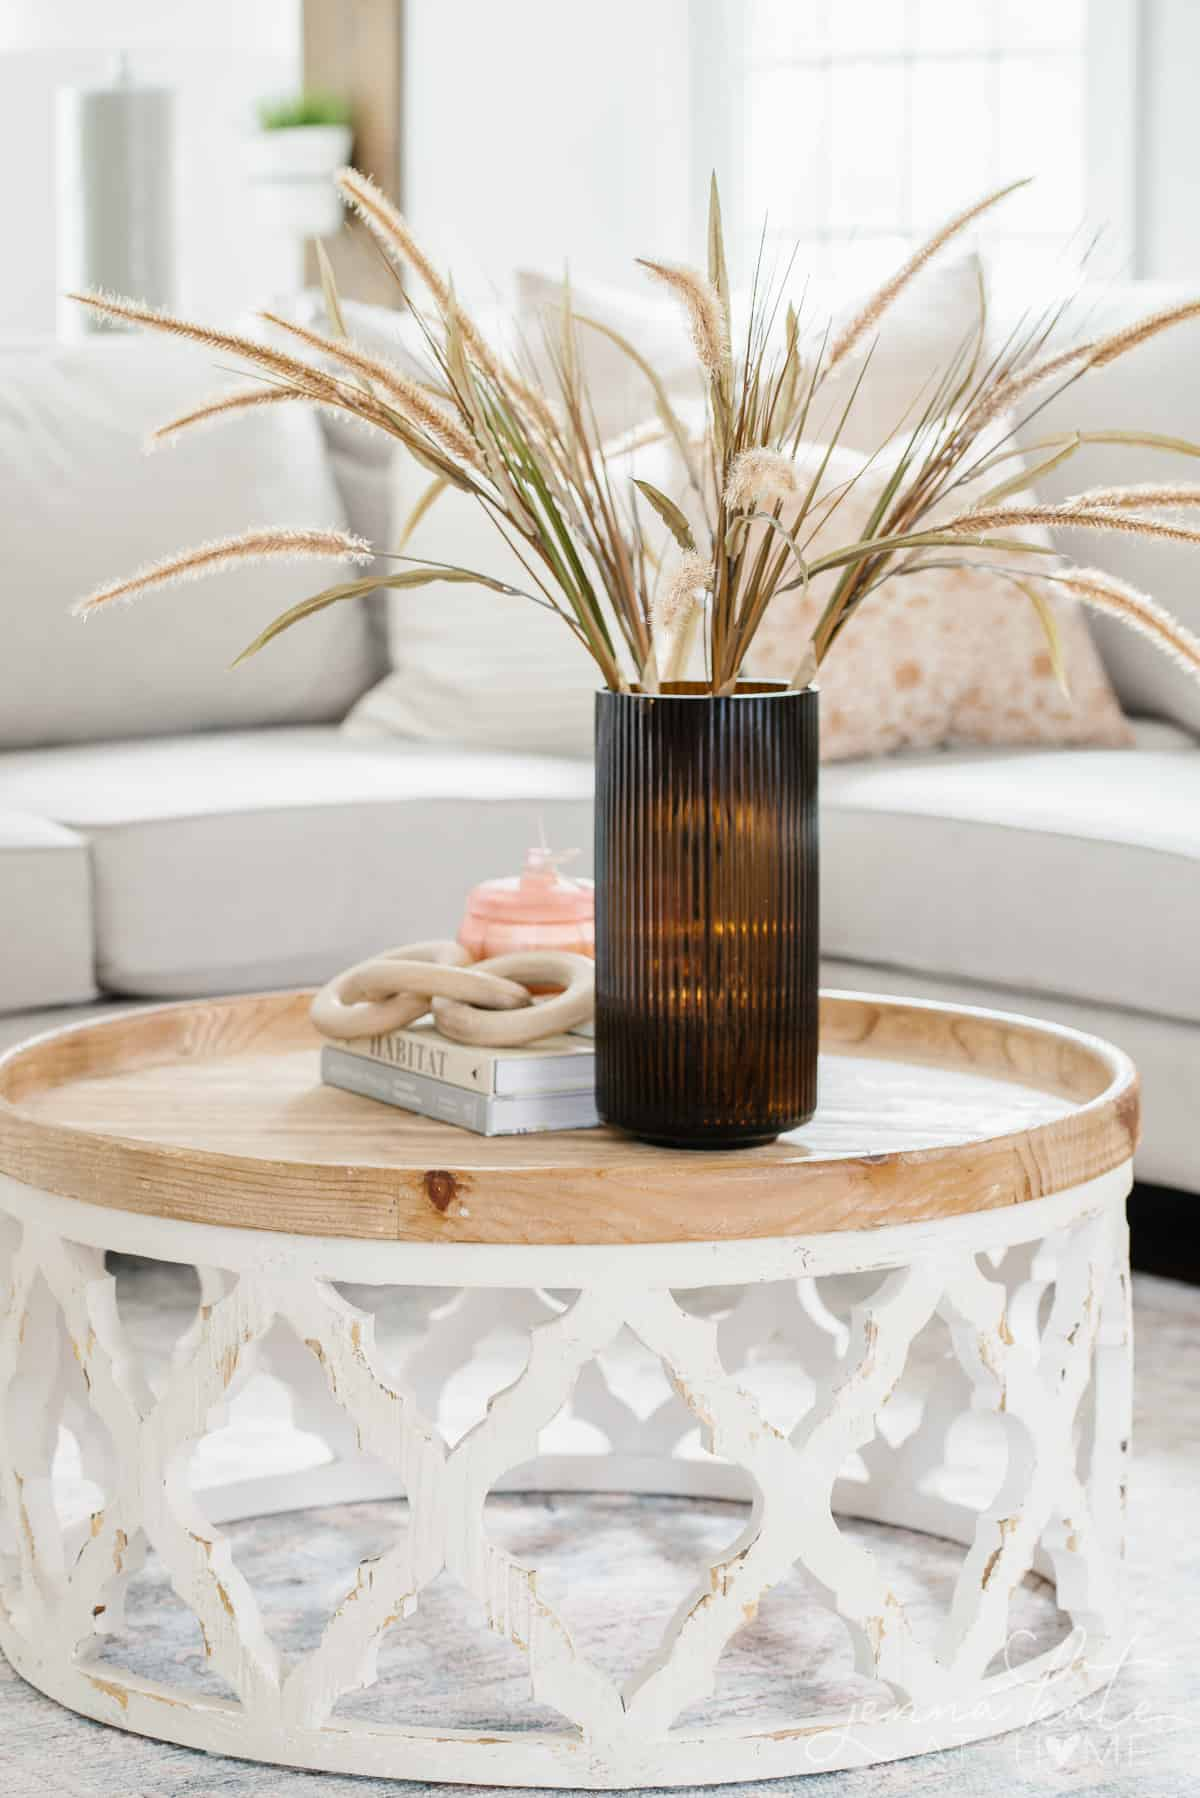 amber vase filled with dry grass on a wooden coffee table